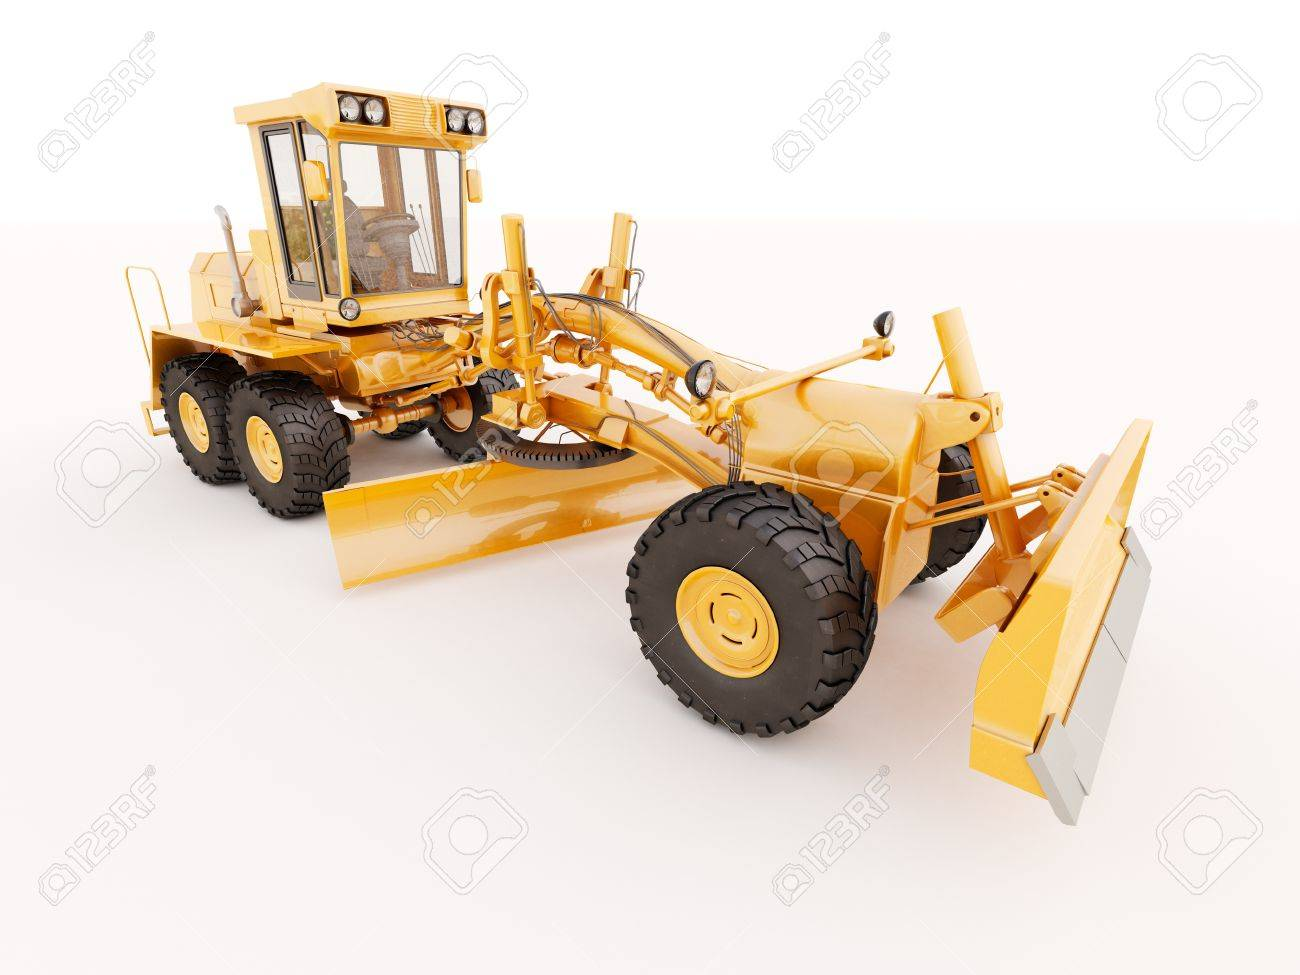 Modern three-axle road grader on a light background Stock Photo - 21015309